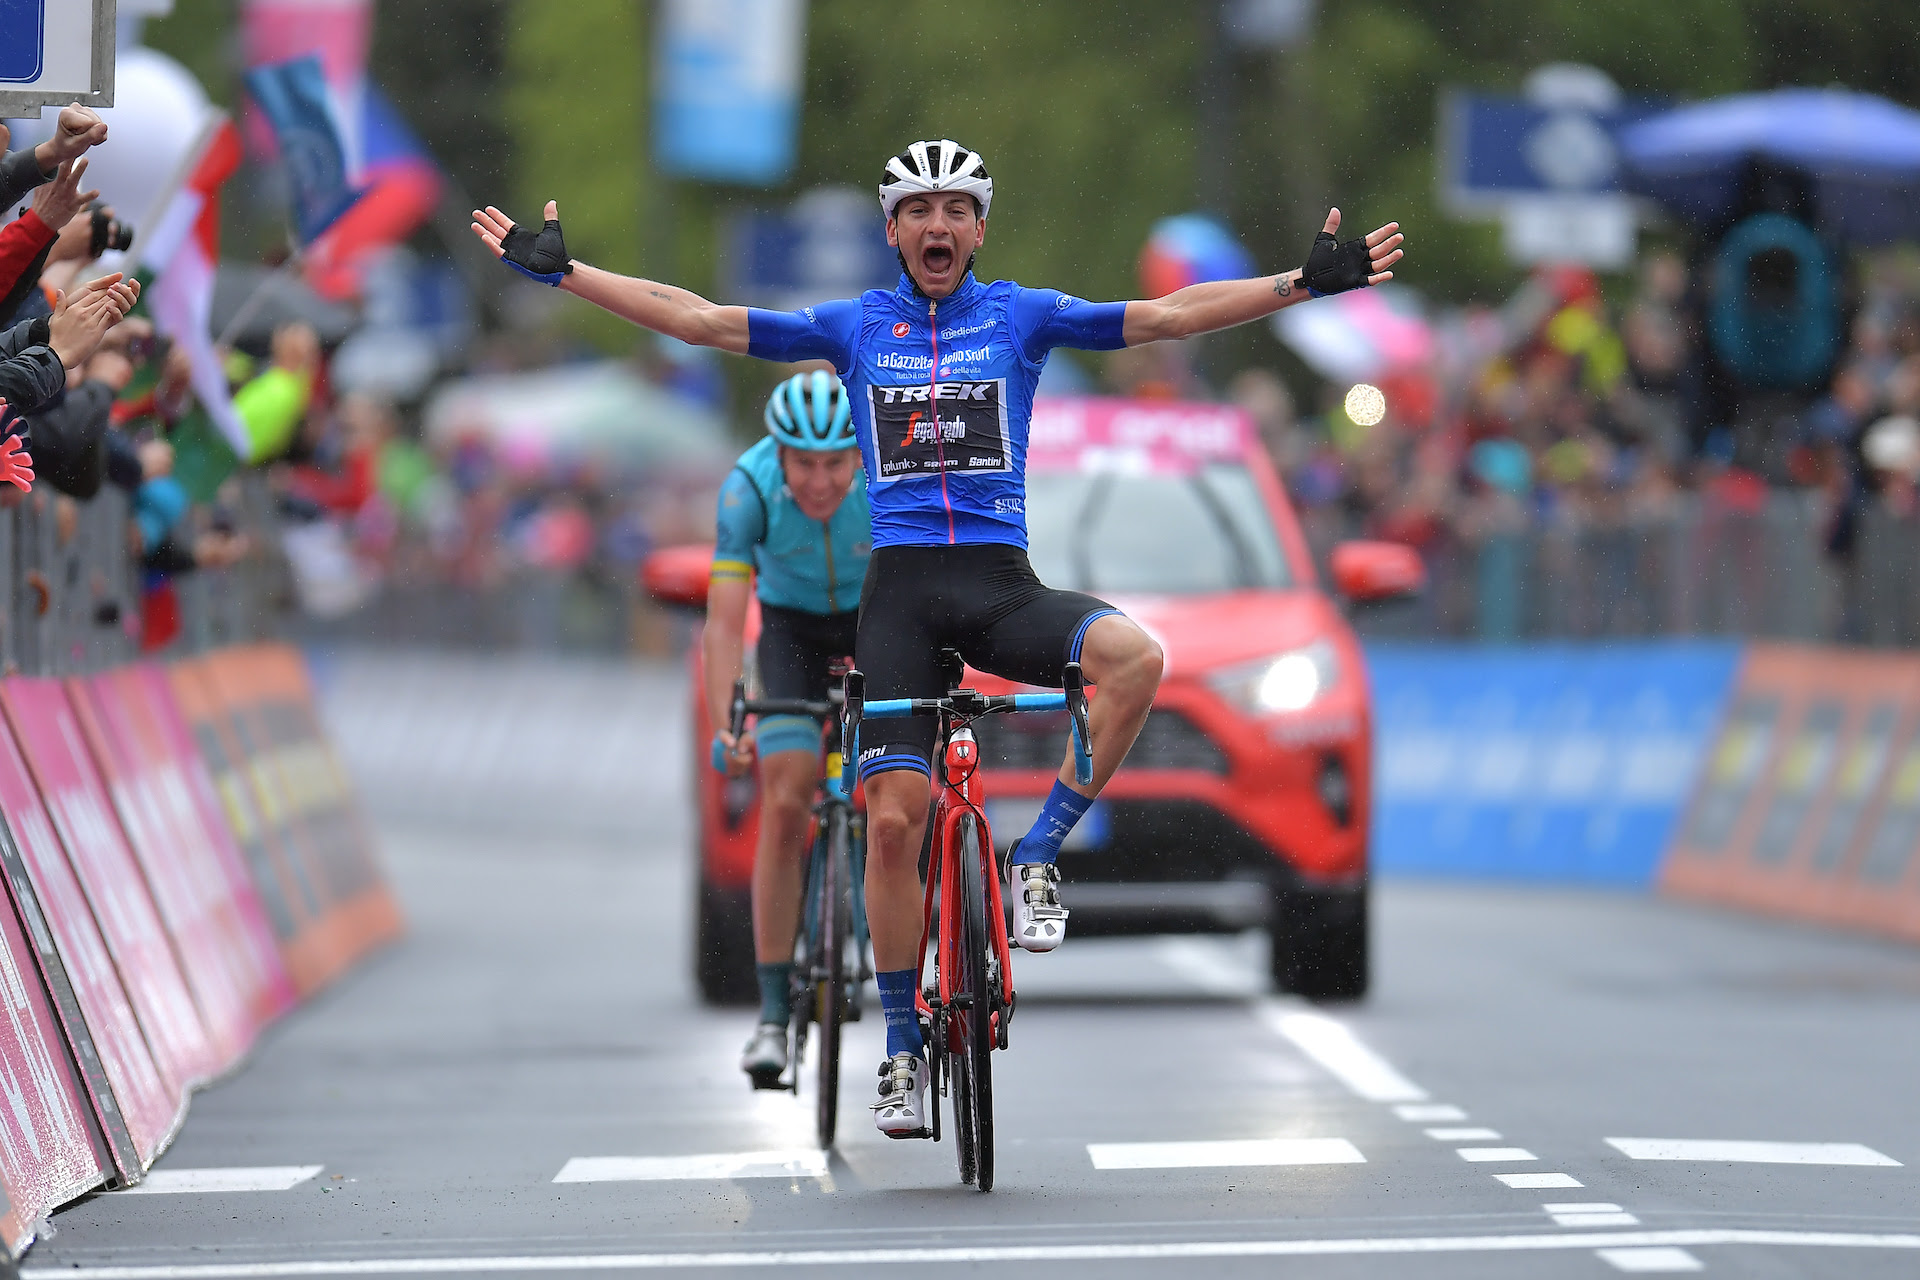 LOVERE, ITALY - MAY 28: Arrival / Giulio Ciccone of Italy and Team Trek - Segafredo Blue Mountain Jersey Celebration / Jan Hirt of Czech Republic and Astana Pro Team / during the 102nd Giro d'Italia 2019, Stage 16 a 194km stage from Lovere to Ponte di Legno 1254m / Tour of Italy / #Giro / @giroditalia / on May 28, 2019 in Lovere, Italy. (Photo by Justin Setterfield/Getty Images)